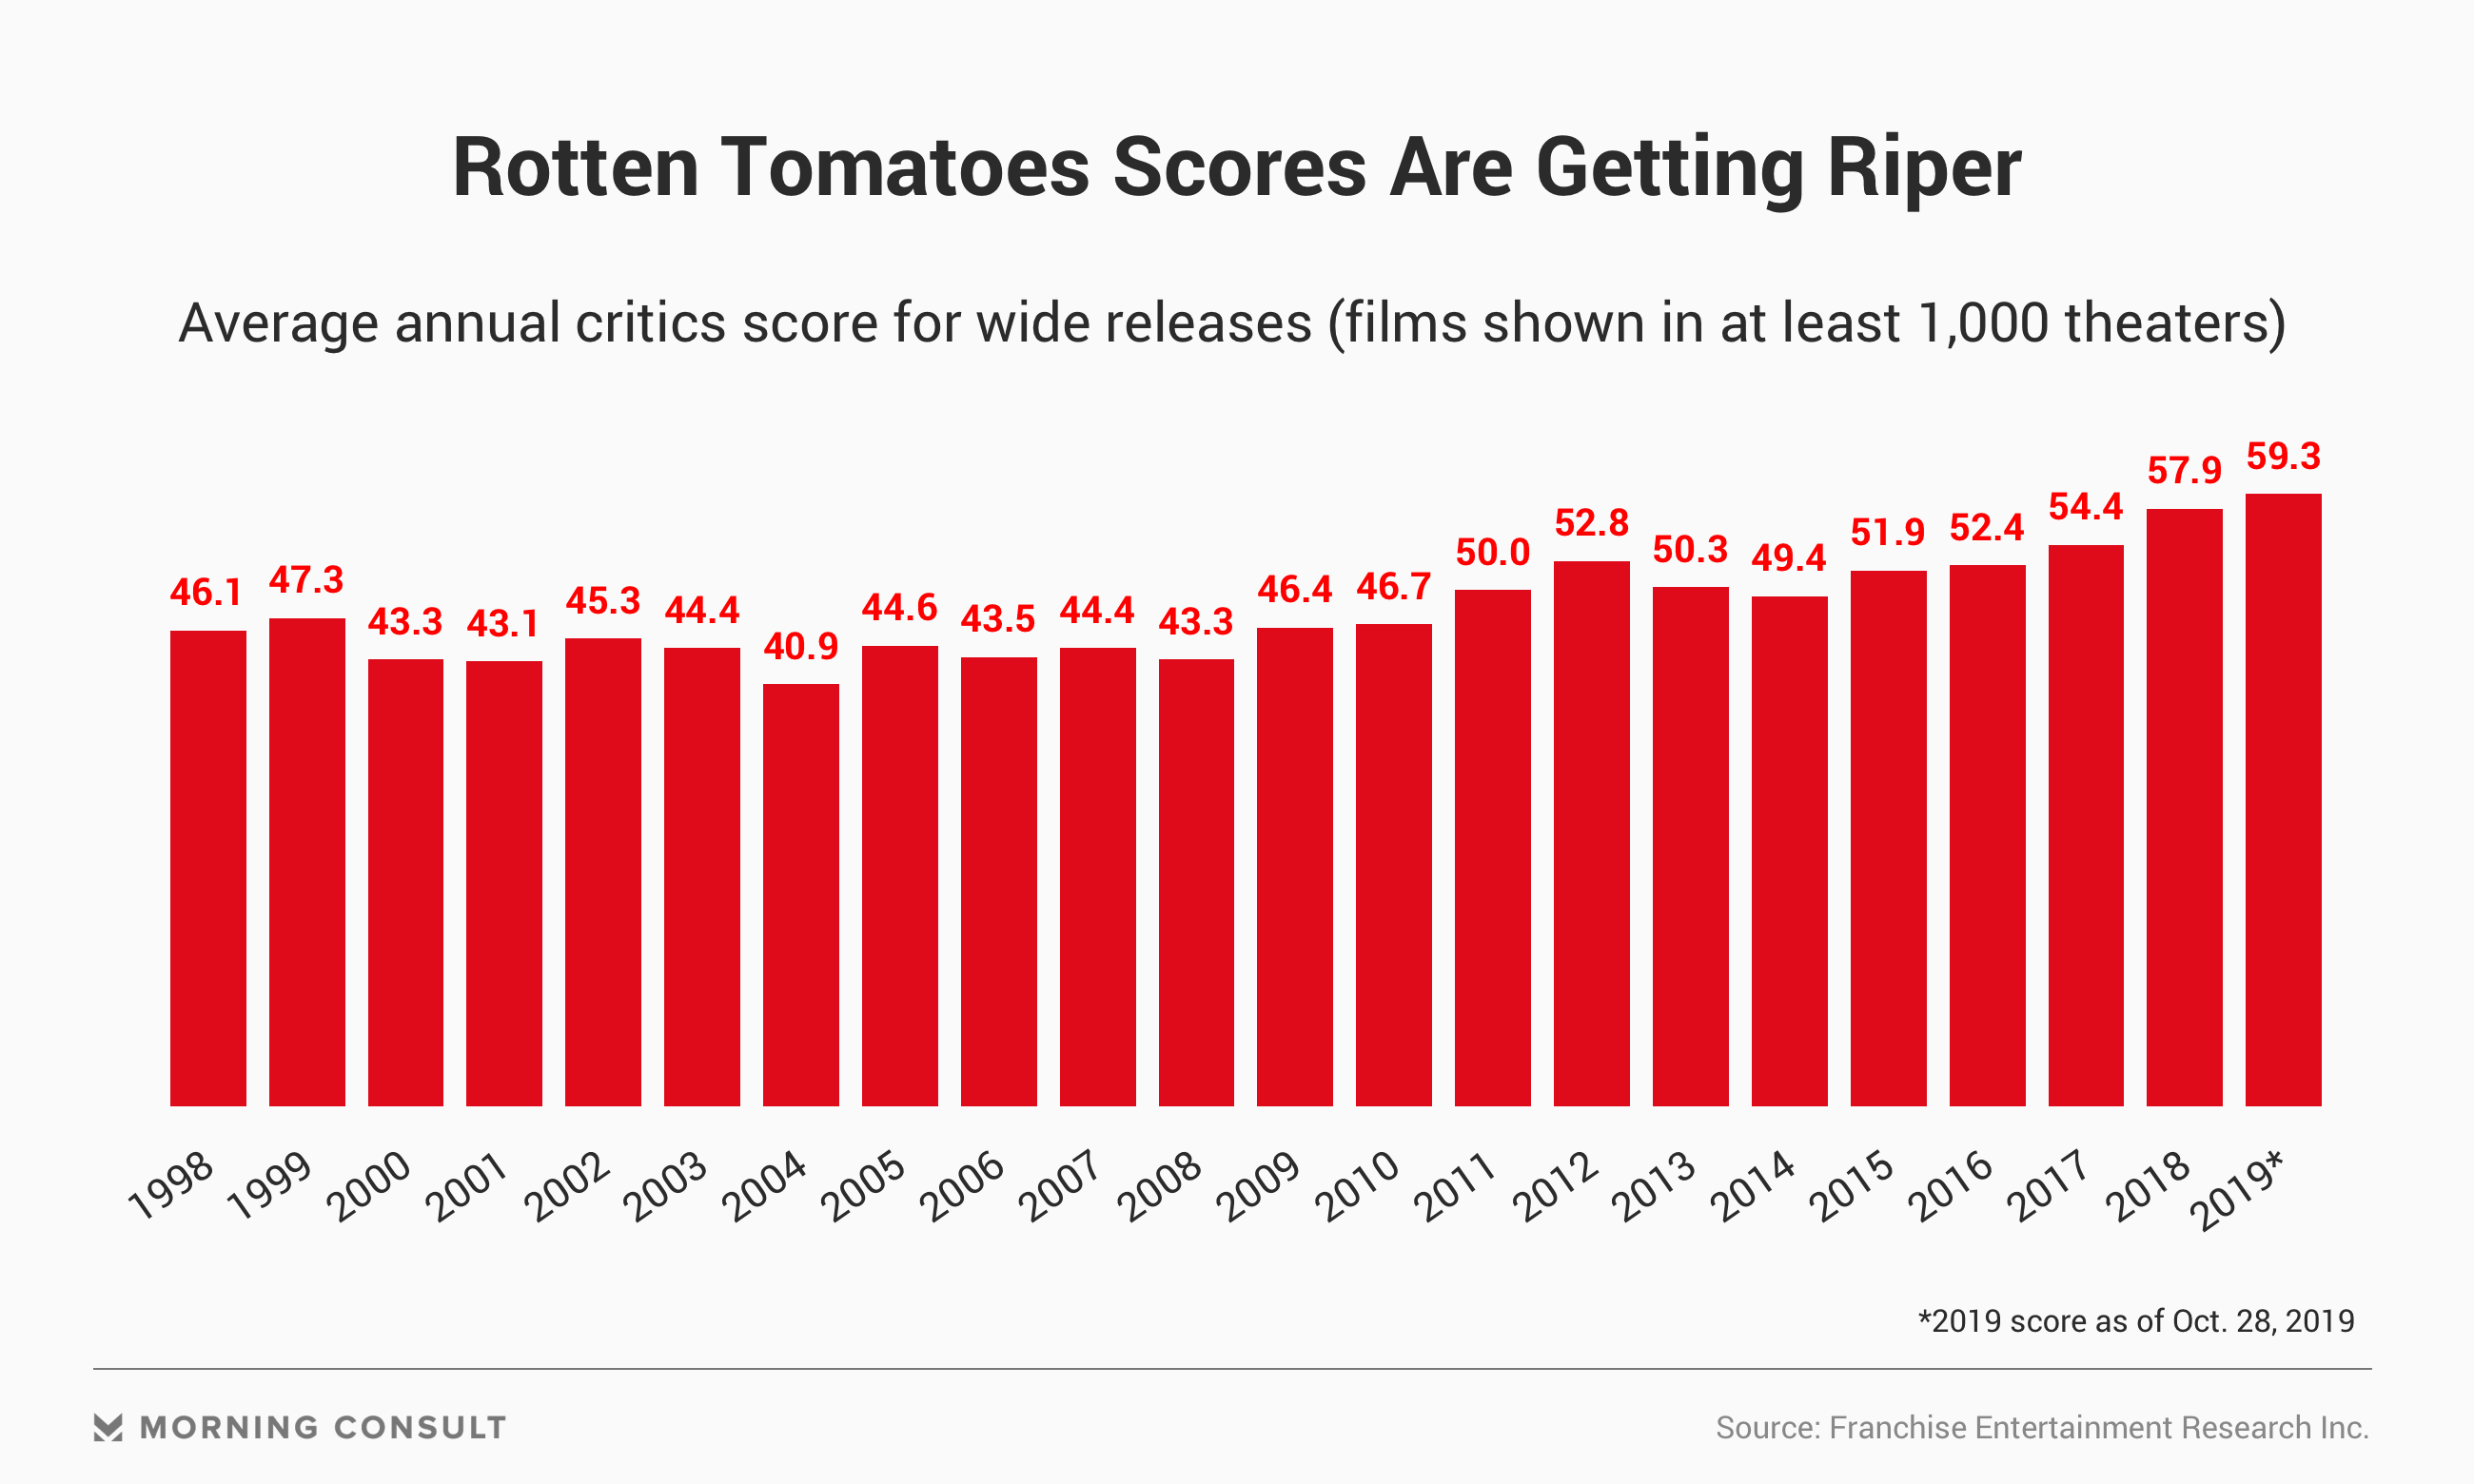 Rotten Tomatoes Scores Continue To Freshen What Does This Mean For Movies